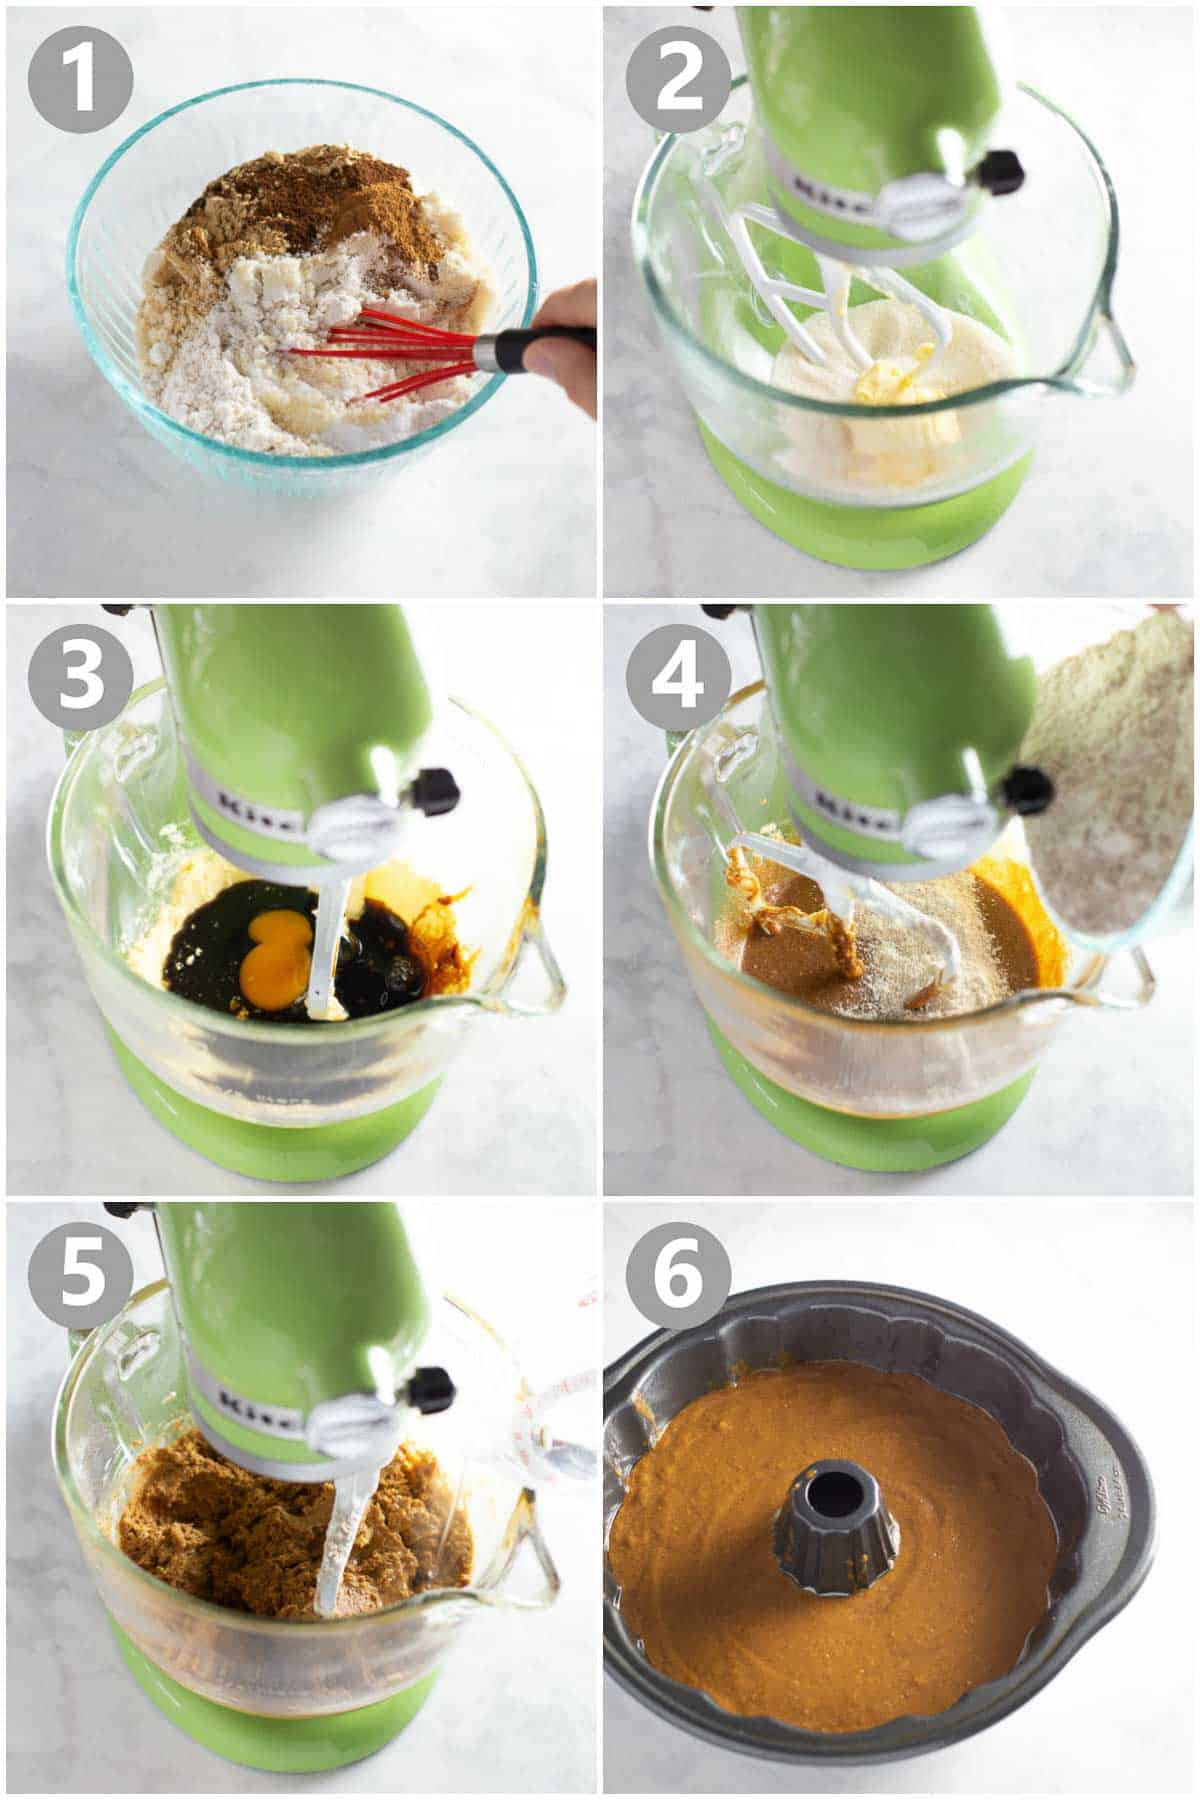 step by step instructions of how to make gluten-free gingerbread